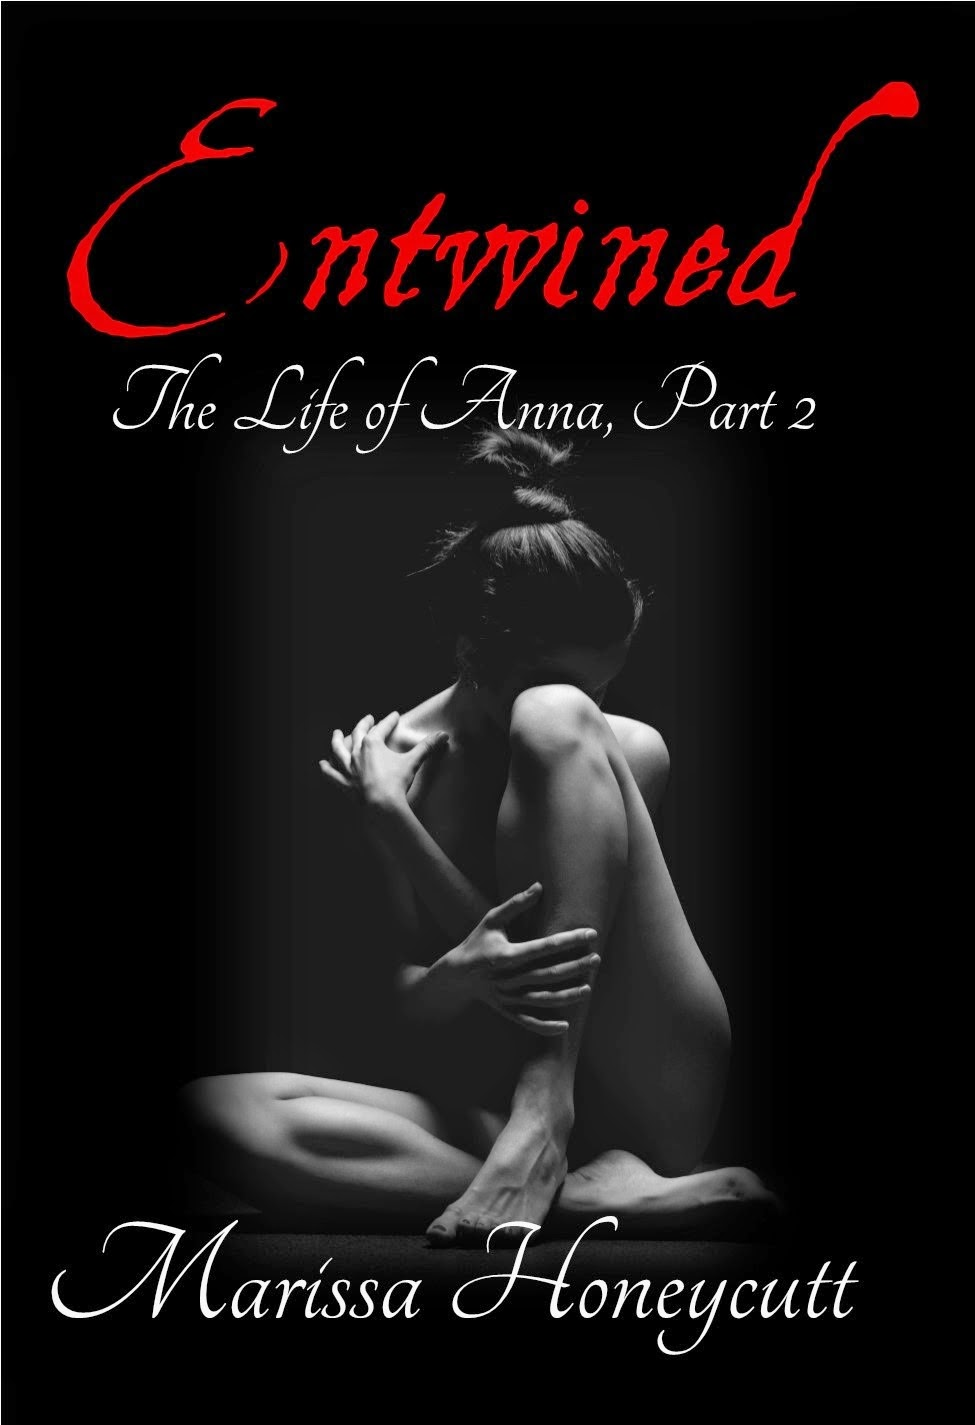 https://www.goodreads.com/book/show/23277447-entwined